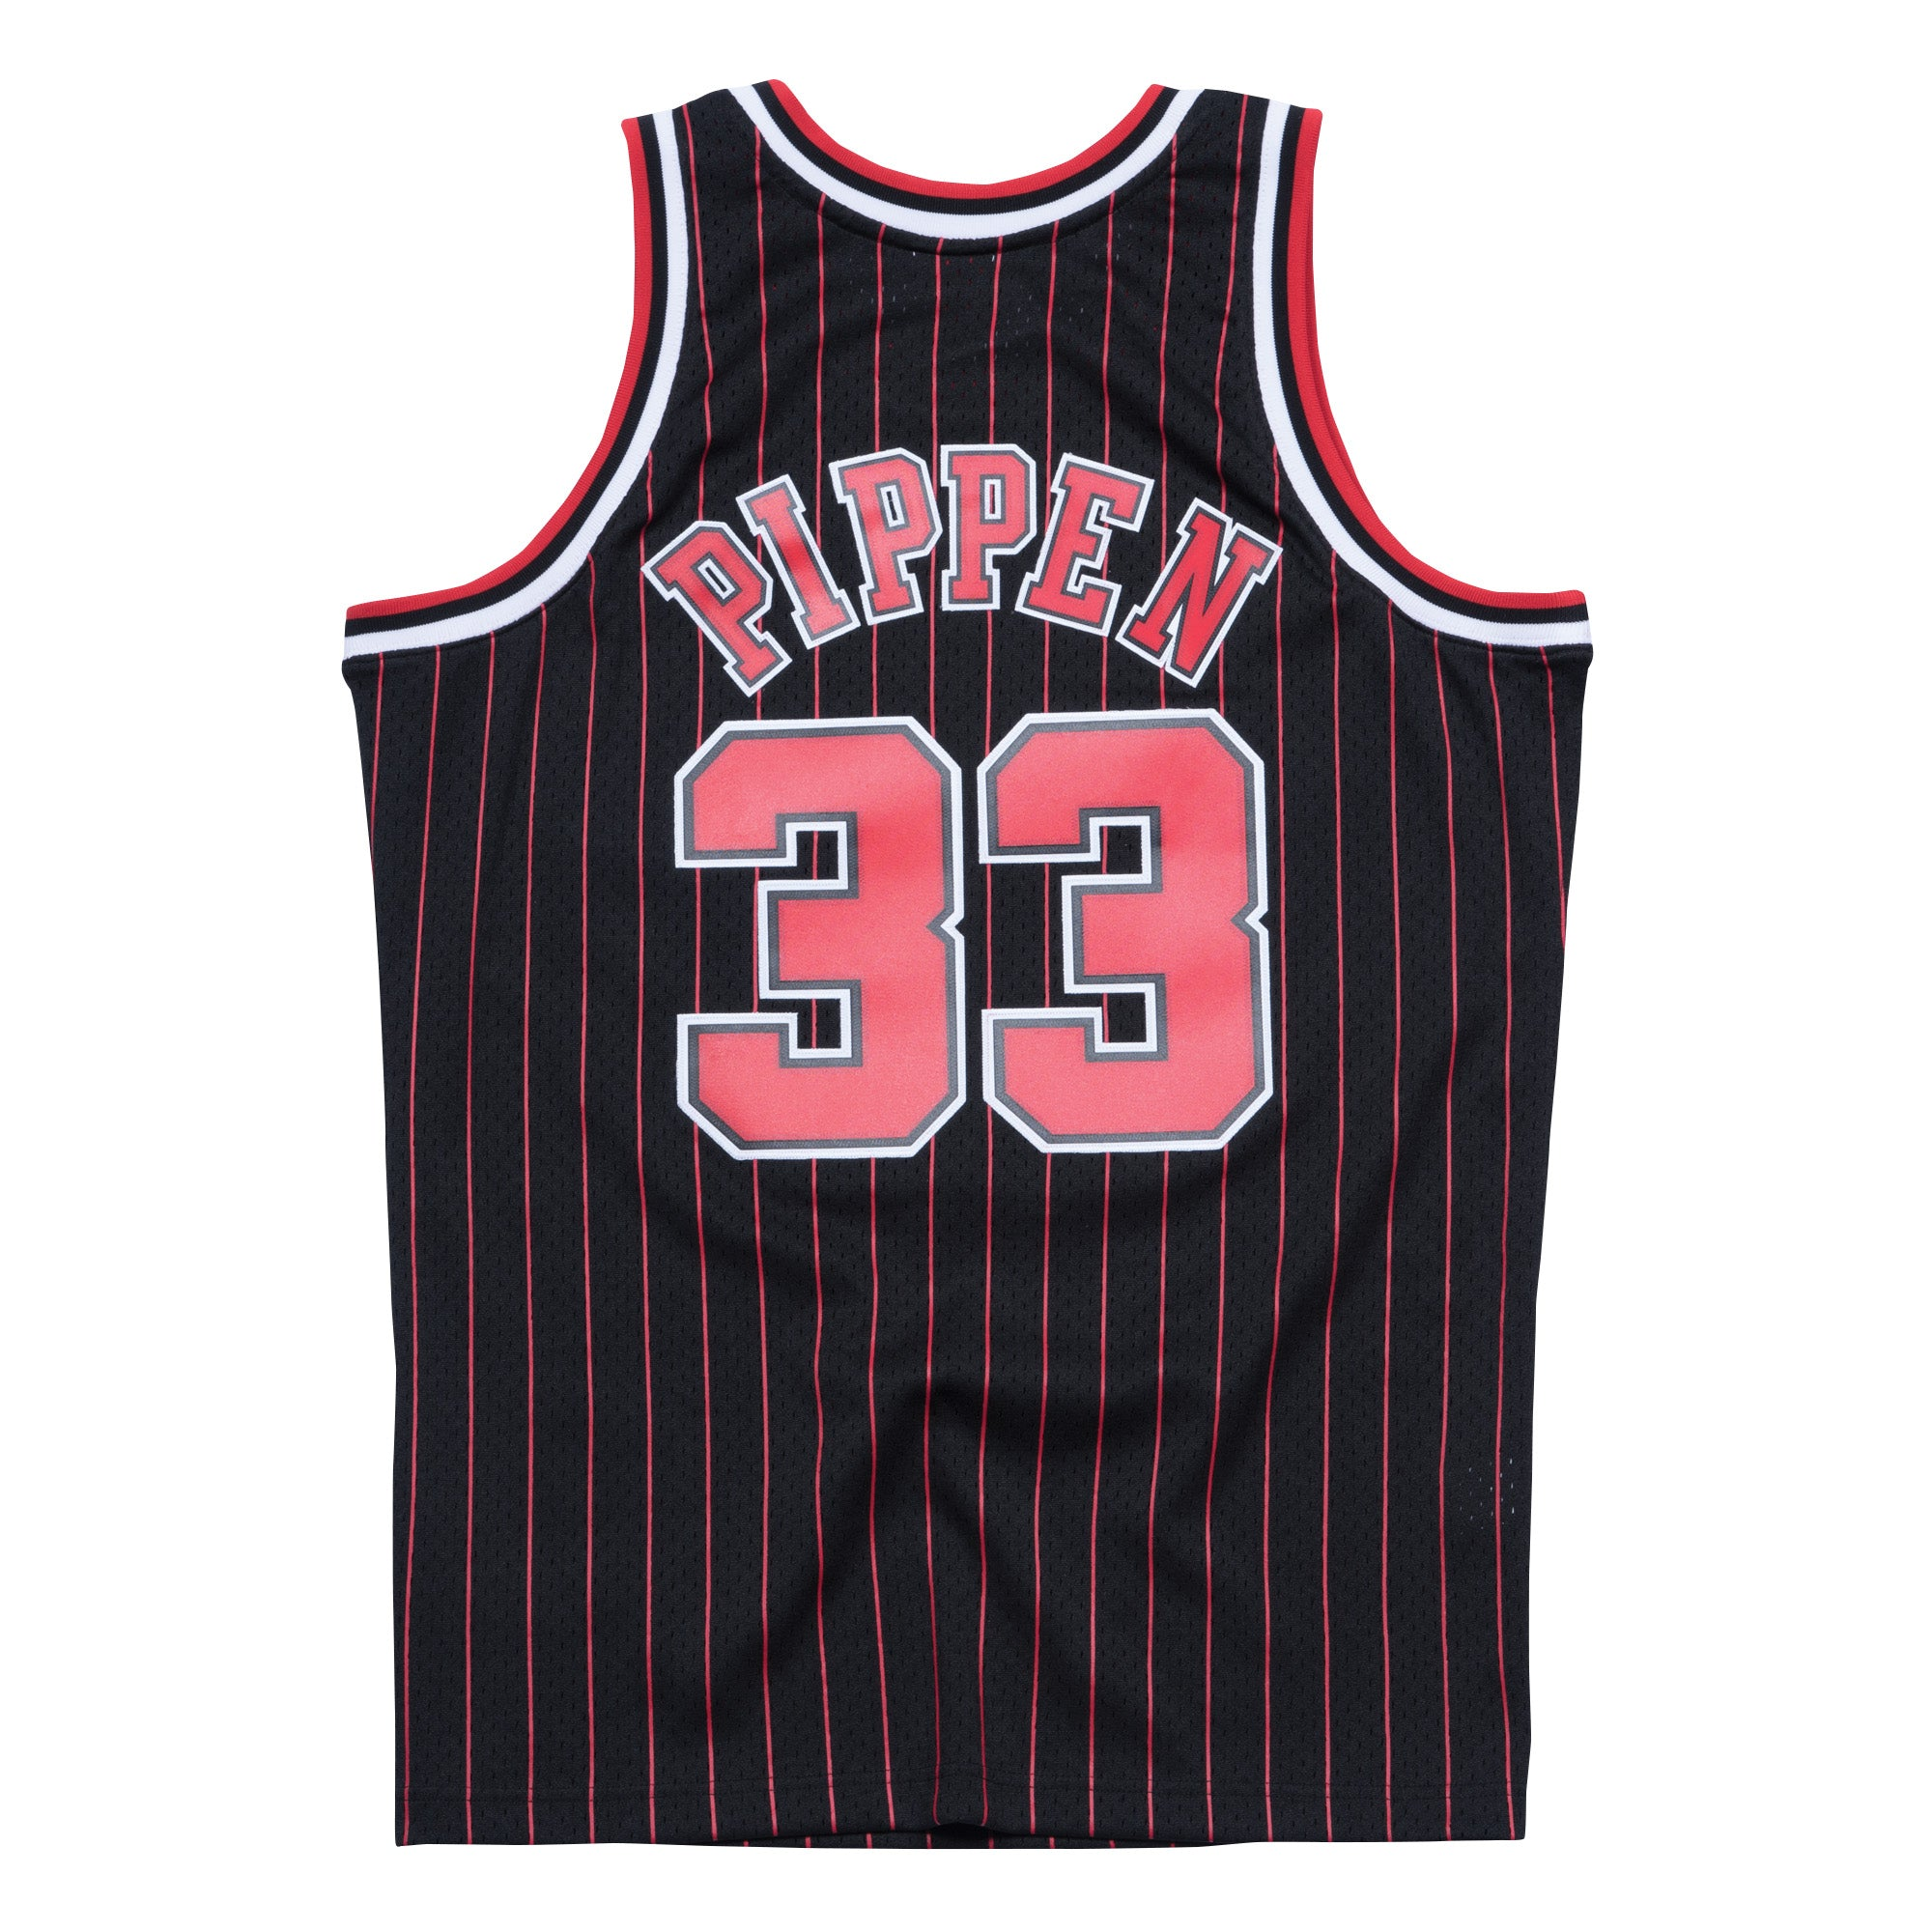 purchase cheap 1a89f 62aa5 Scottie Pippen Chicago Bulls Hardwood Classics Throwback ...